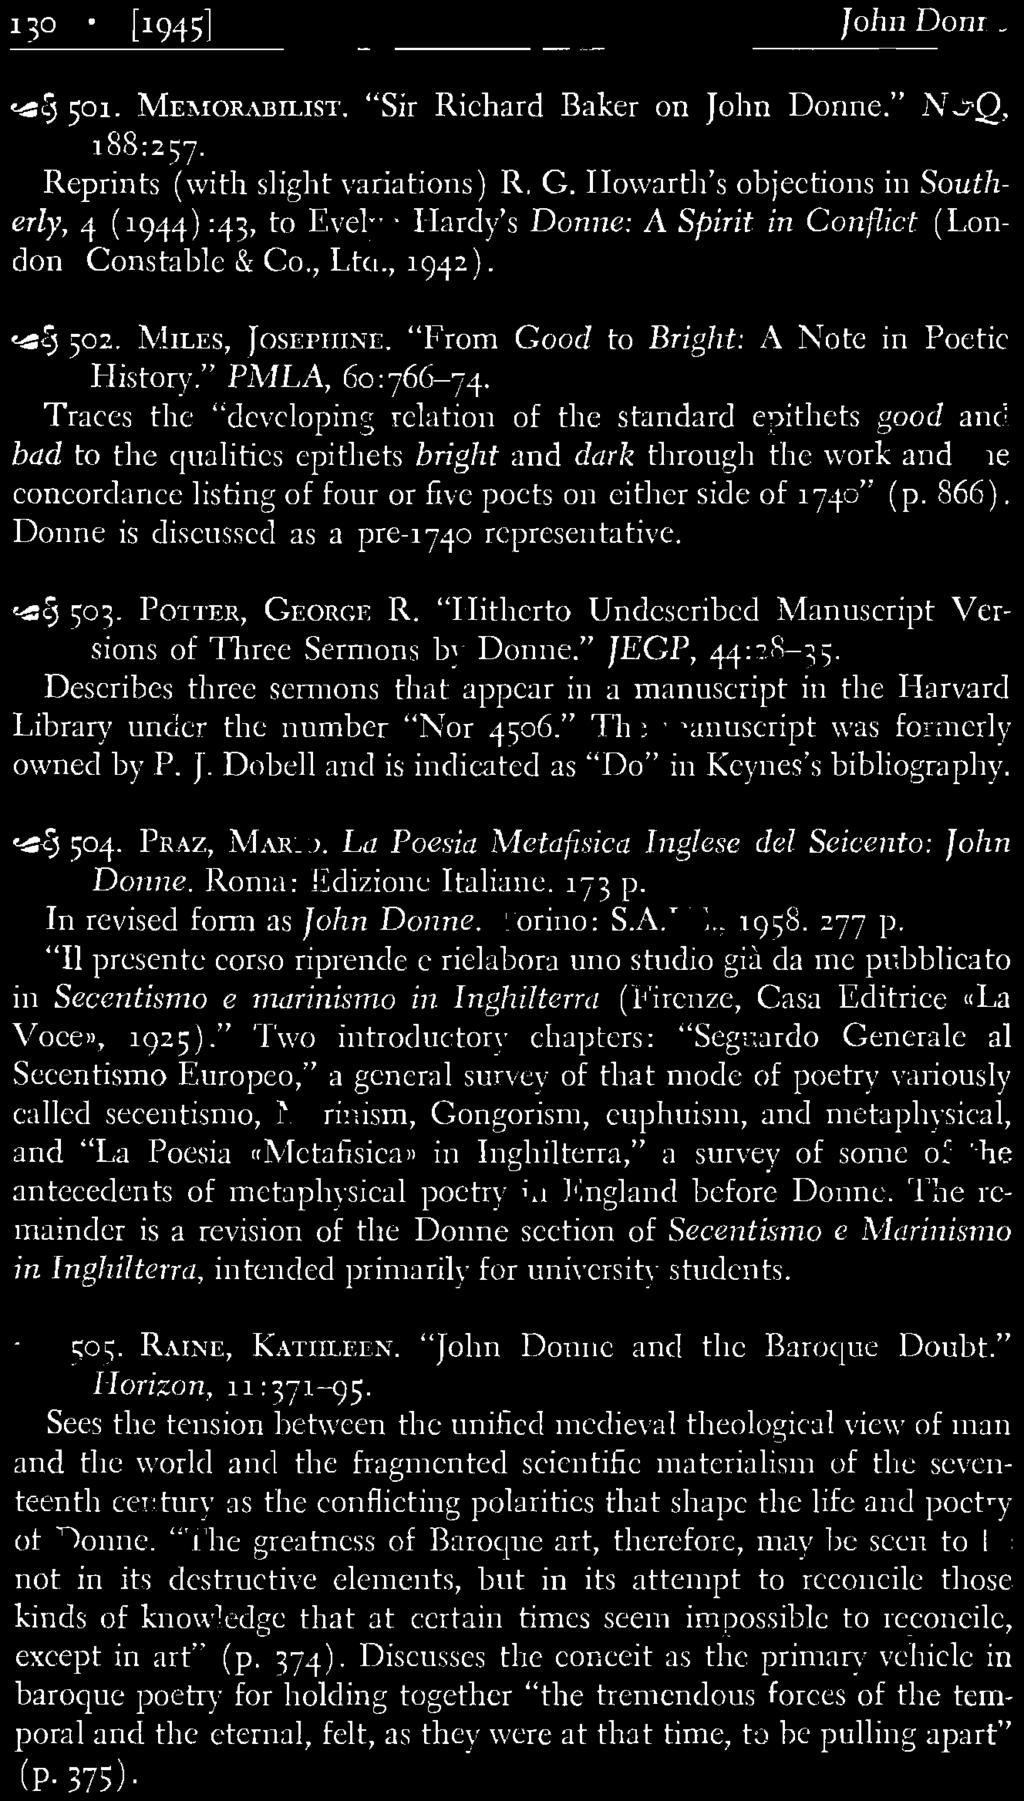 "Dobell and is indicated as ""Do"" in Keynes's bibliography. ~ S04. PRAZ, MARIO. La Poesia Metafisica Inglese del Seicento: John Donne. Roma: Edizione Italiane. 173 p. In revised form as John Donne."